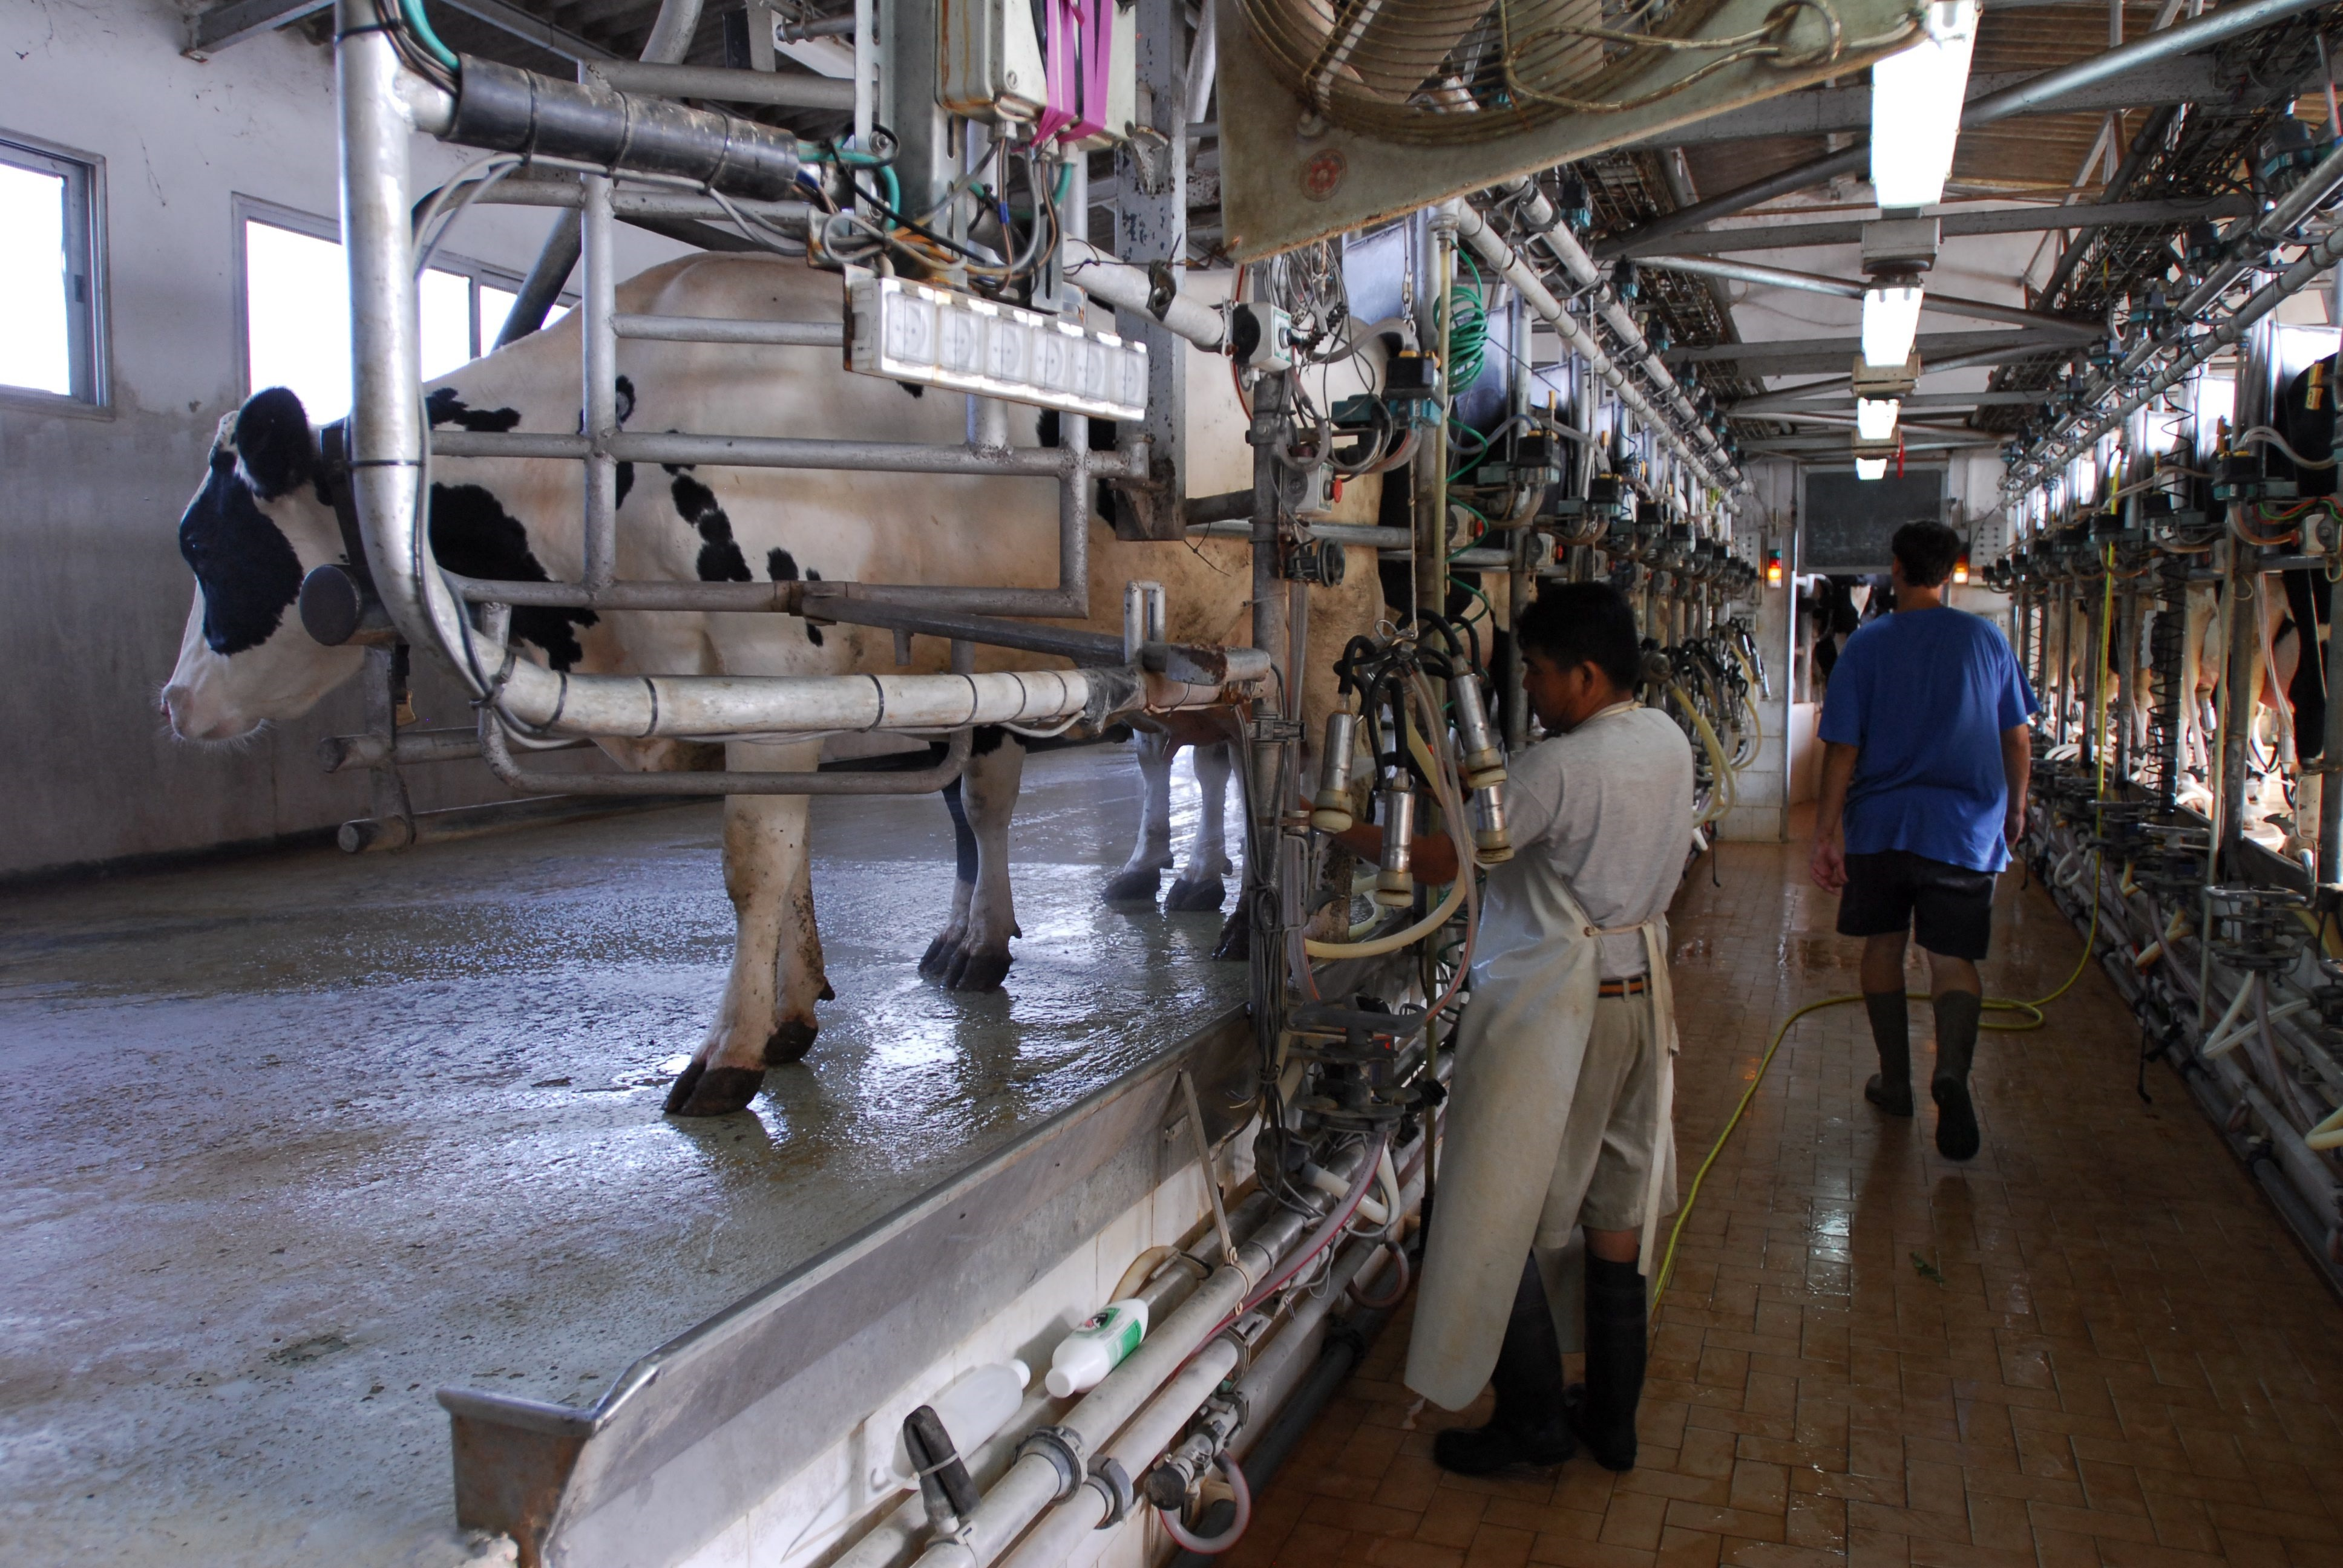 Israeli Cows are Taking Over the World - The Tower - The Tower